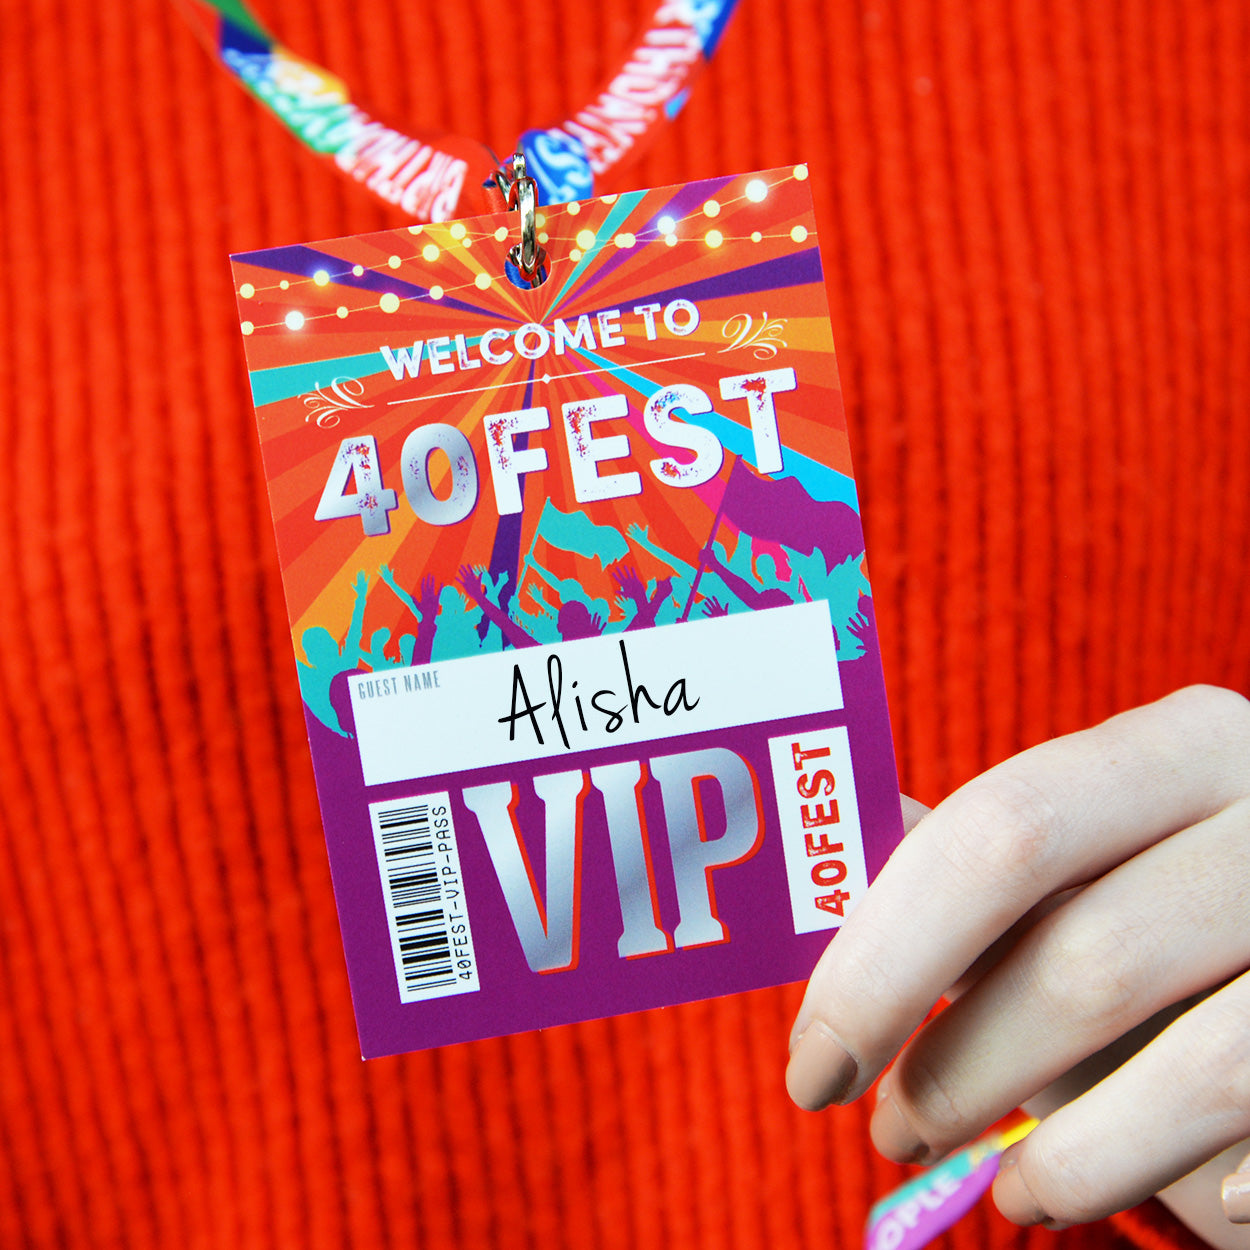 40fest festival birthday party vip pass lanyard favours